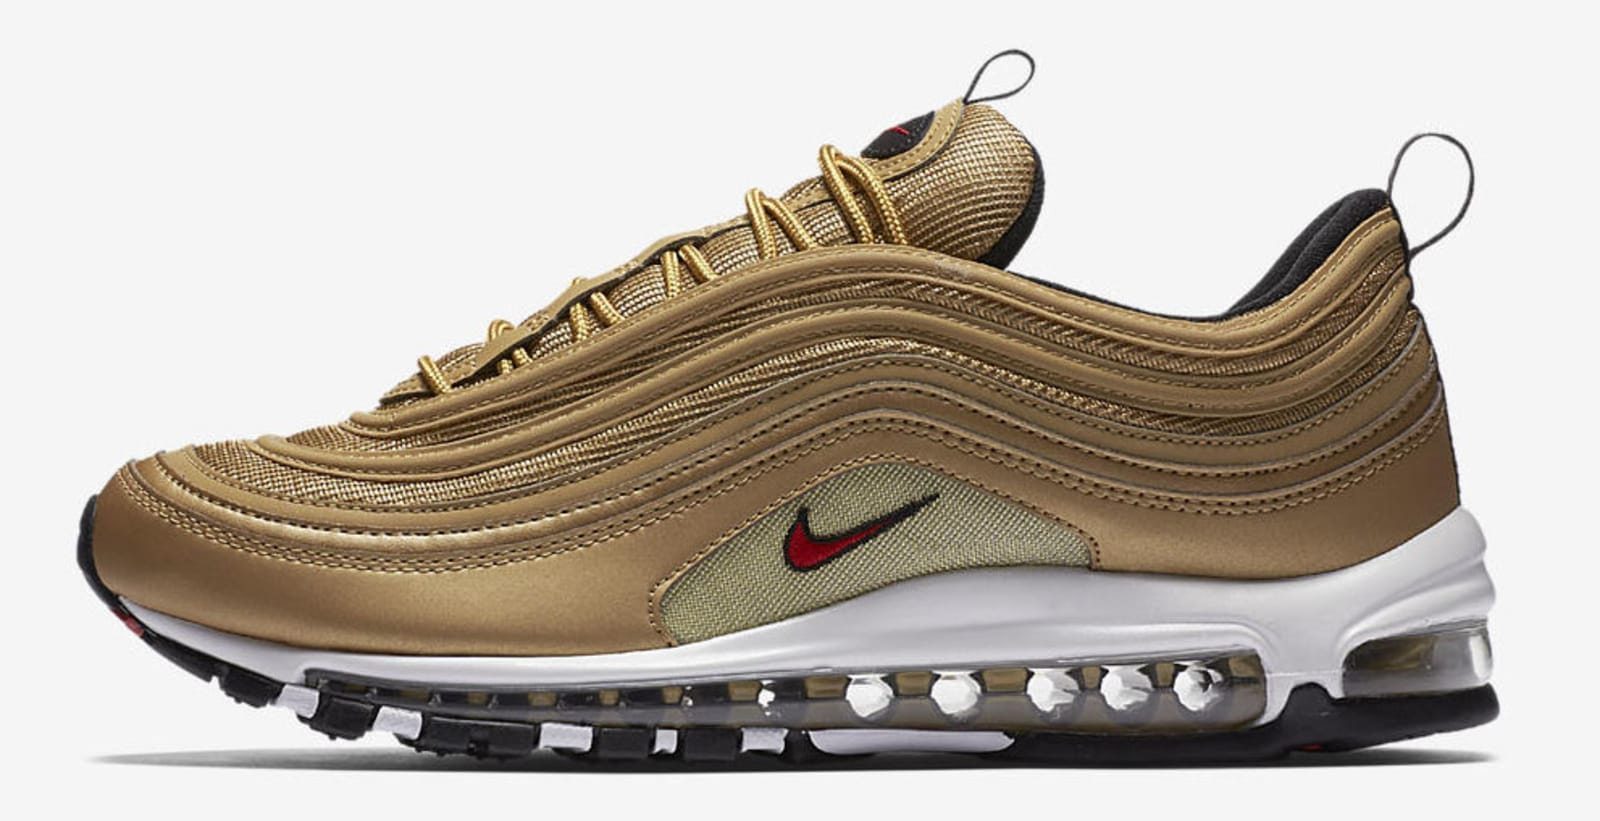 6e73bb74f Nike Air Max 97 'Metallic Gold' - Release Roundup Sneakers You Need ...